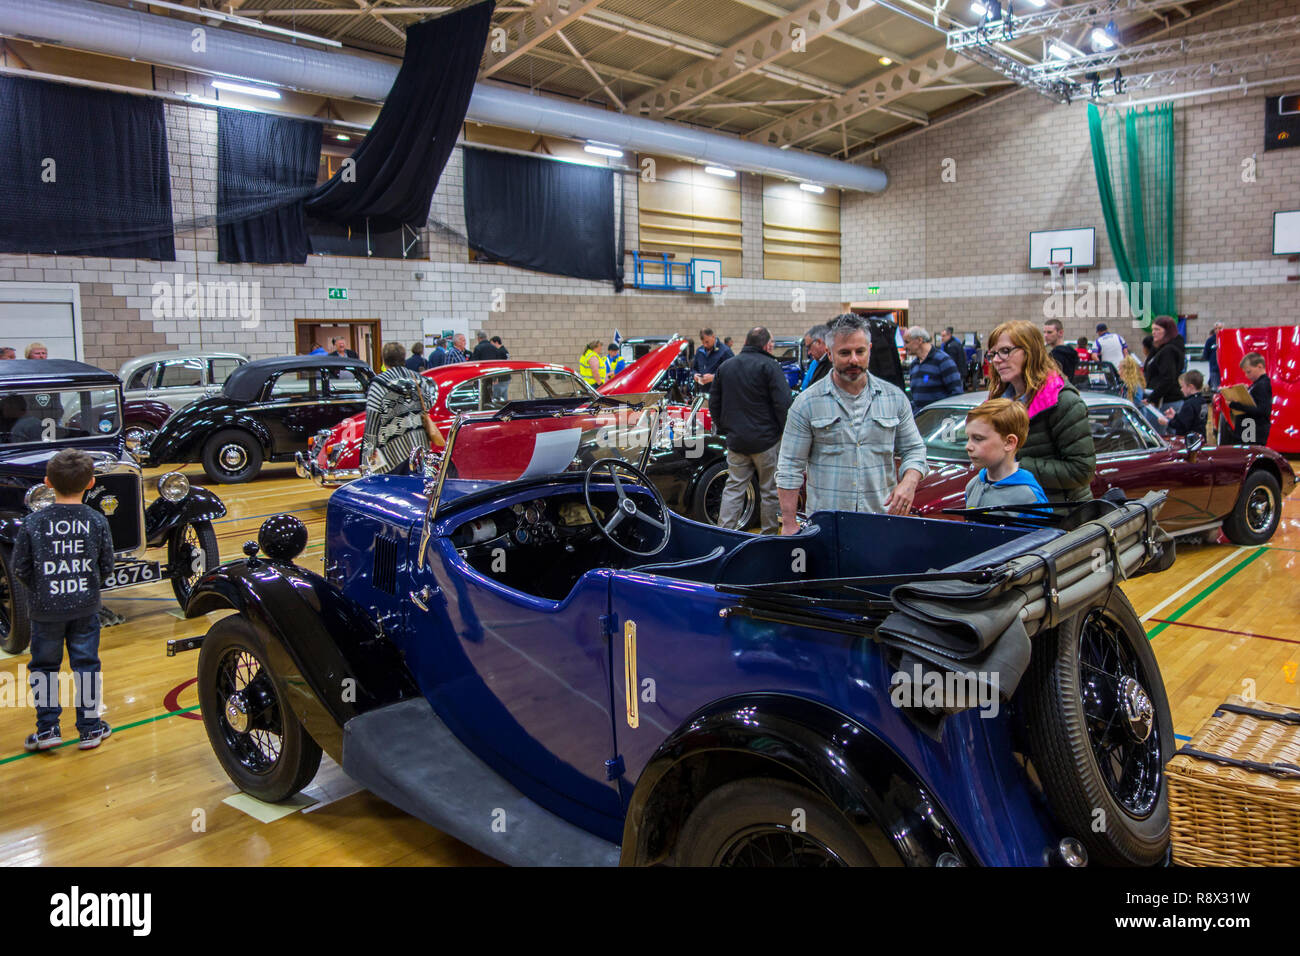 Visitors looking at vintage cars / oldtimers at the Shetland Classic Motor Show in Lerwick, Shetland Islands, UK - Stock Image